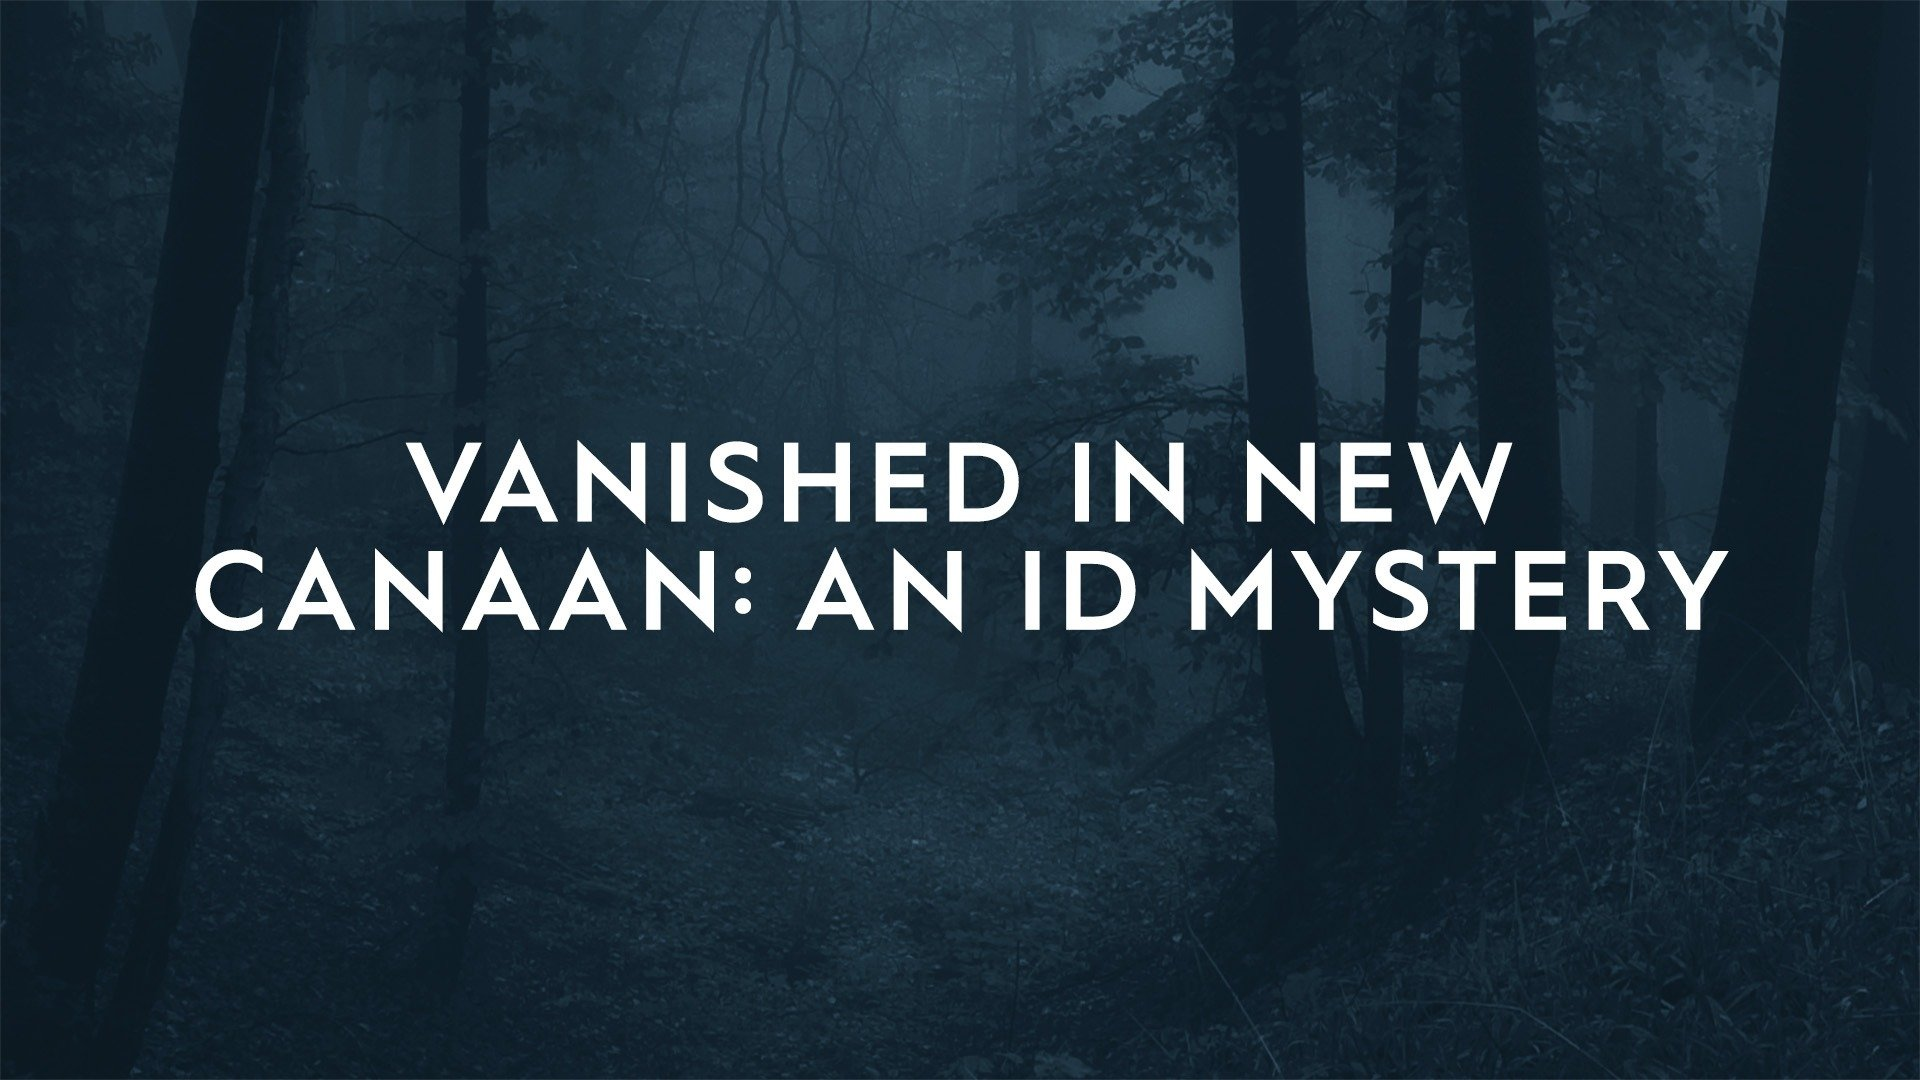 Vanished in New Canaan: An ID Mystery